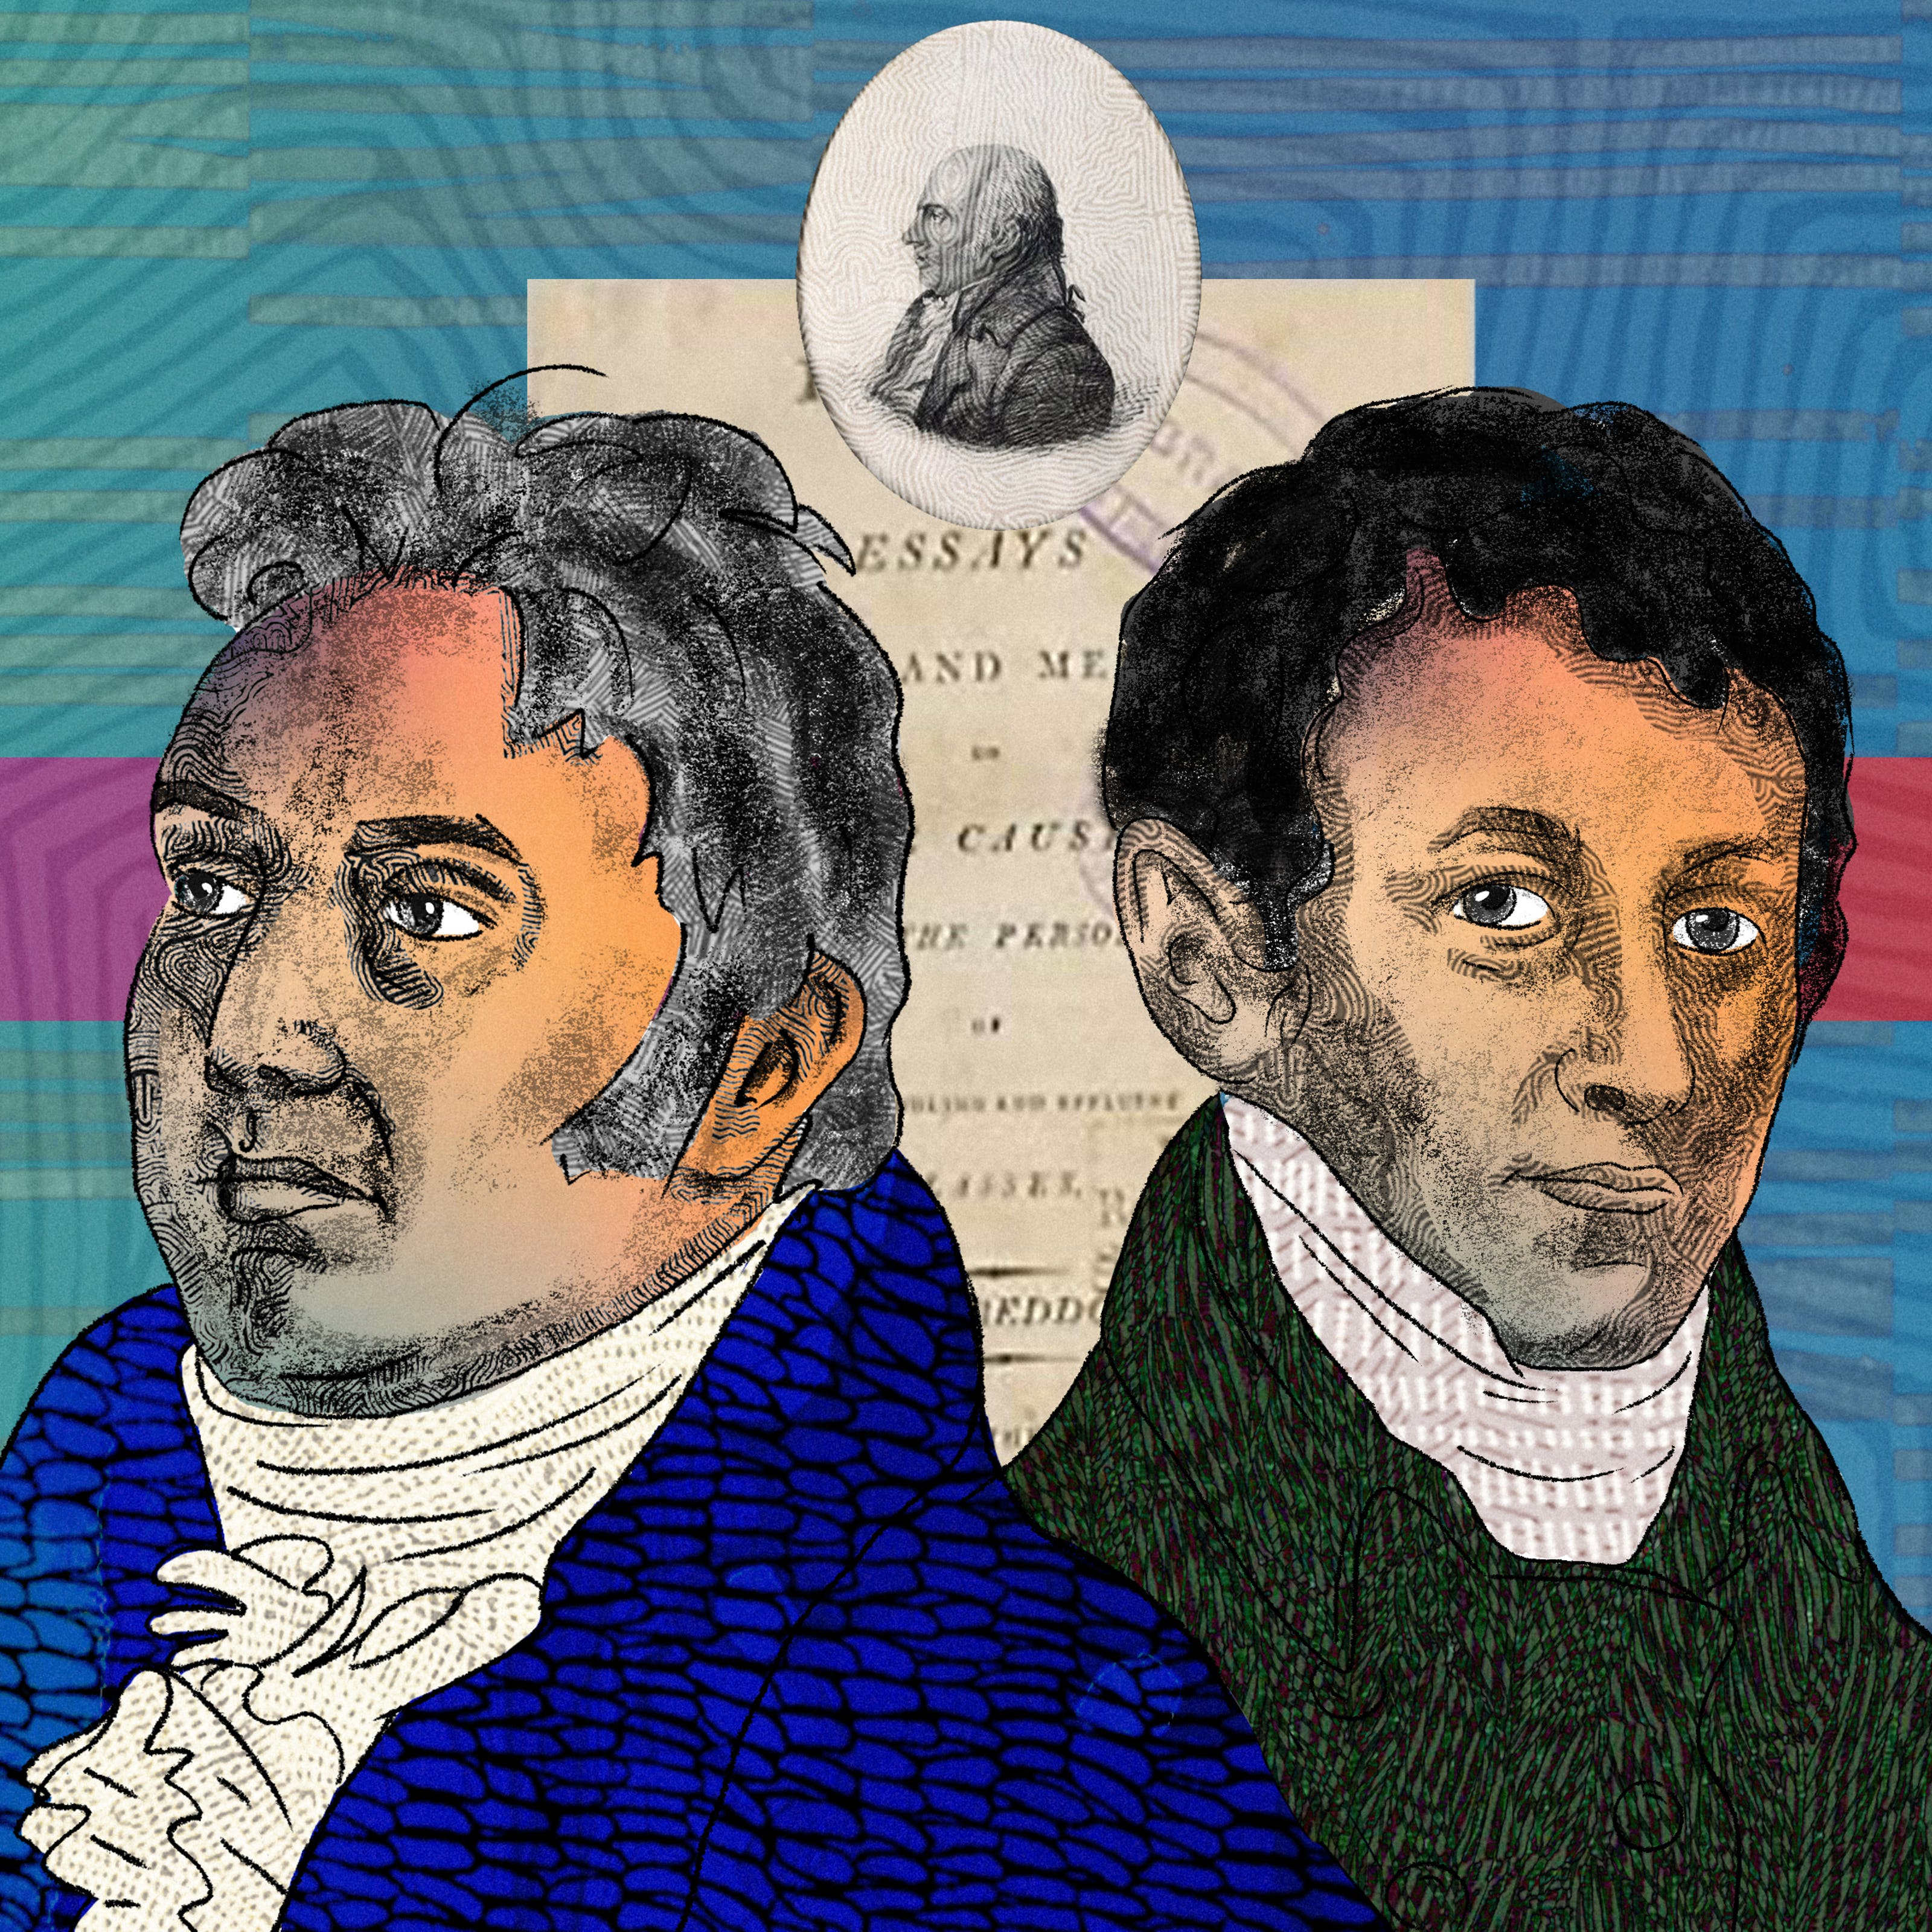 An abstract illustration featuring two head and shoulders portraits of two males posed back to back, depicting the writer philosopher Samuel Taylor Coleridge on the left and chemist Humphry Davy on the right. On the left side by Coleridge there is a romantic image of a red poppy flower as well as an opium pipe. To the right side by Davy there is an archive image of someone inhaling pain relief gas as part of a medical procedure.